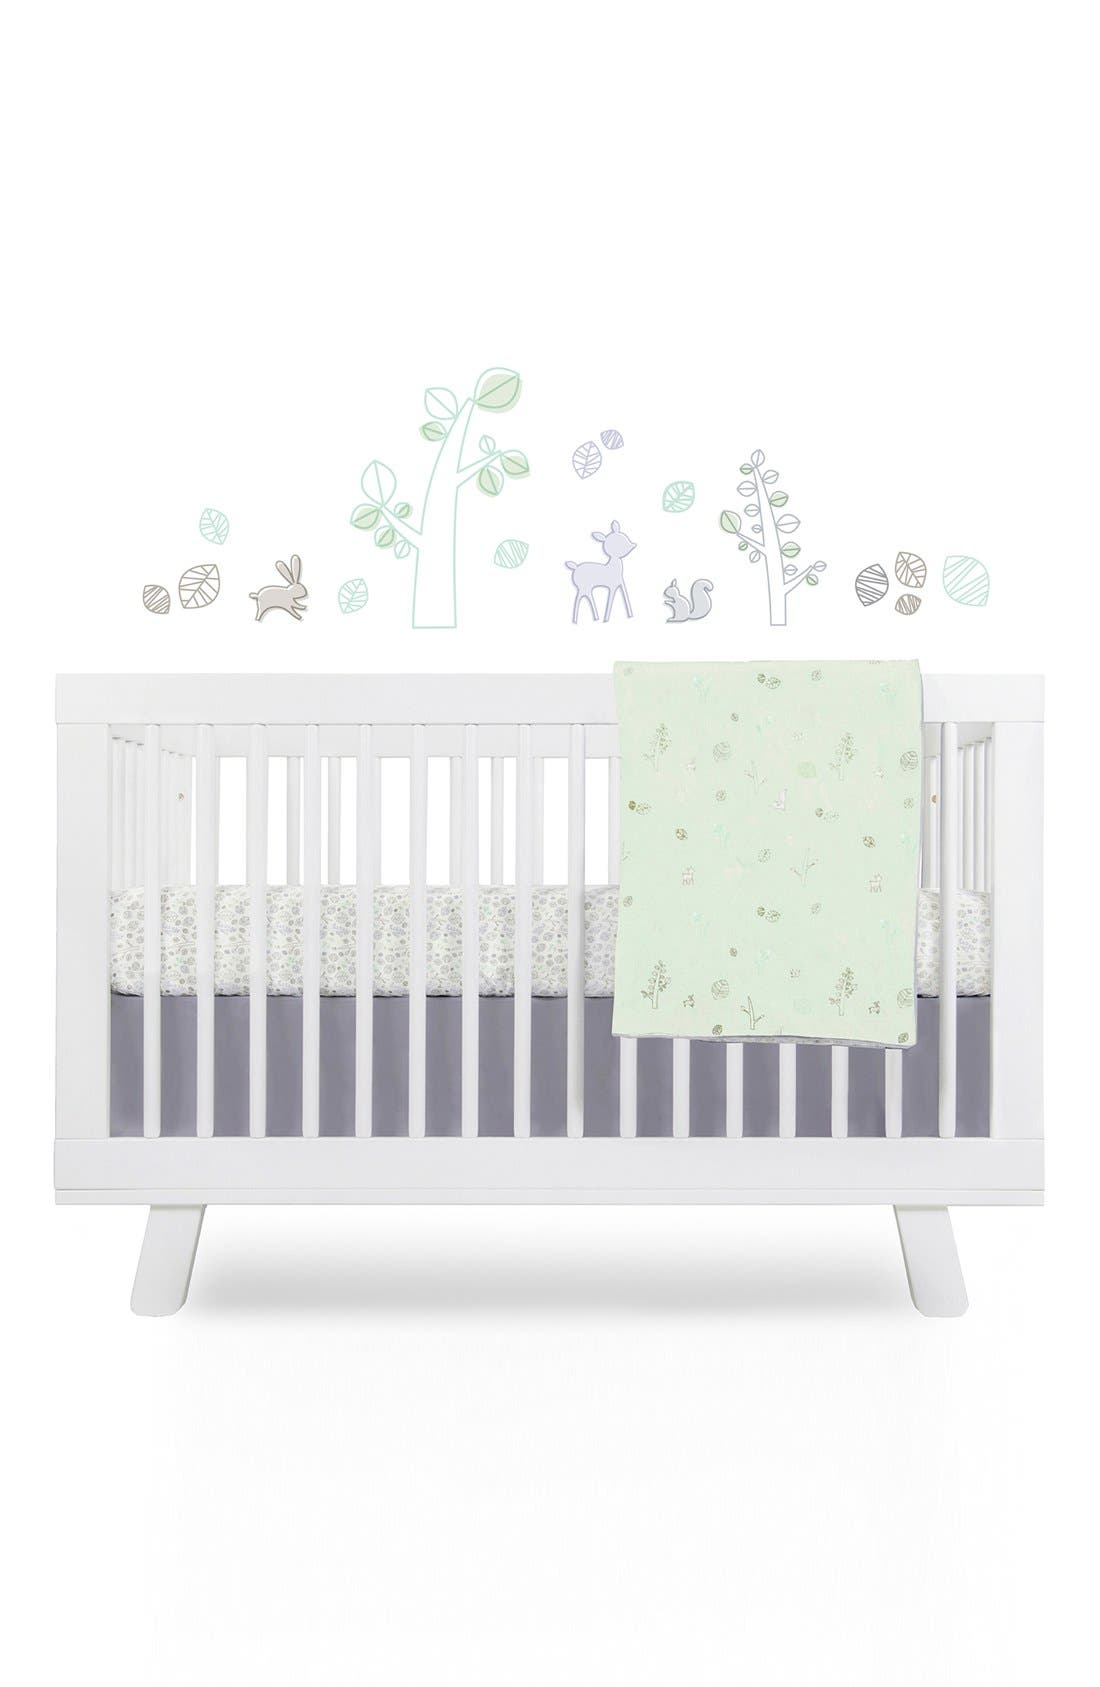 Main Image - babyletto 'Woods' Crib Sheet, Crib Skirt, Contour Changing Pad, Play Blanket & Wall Decals